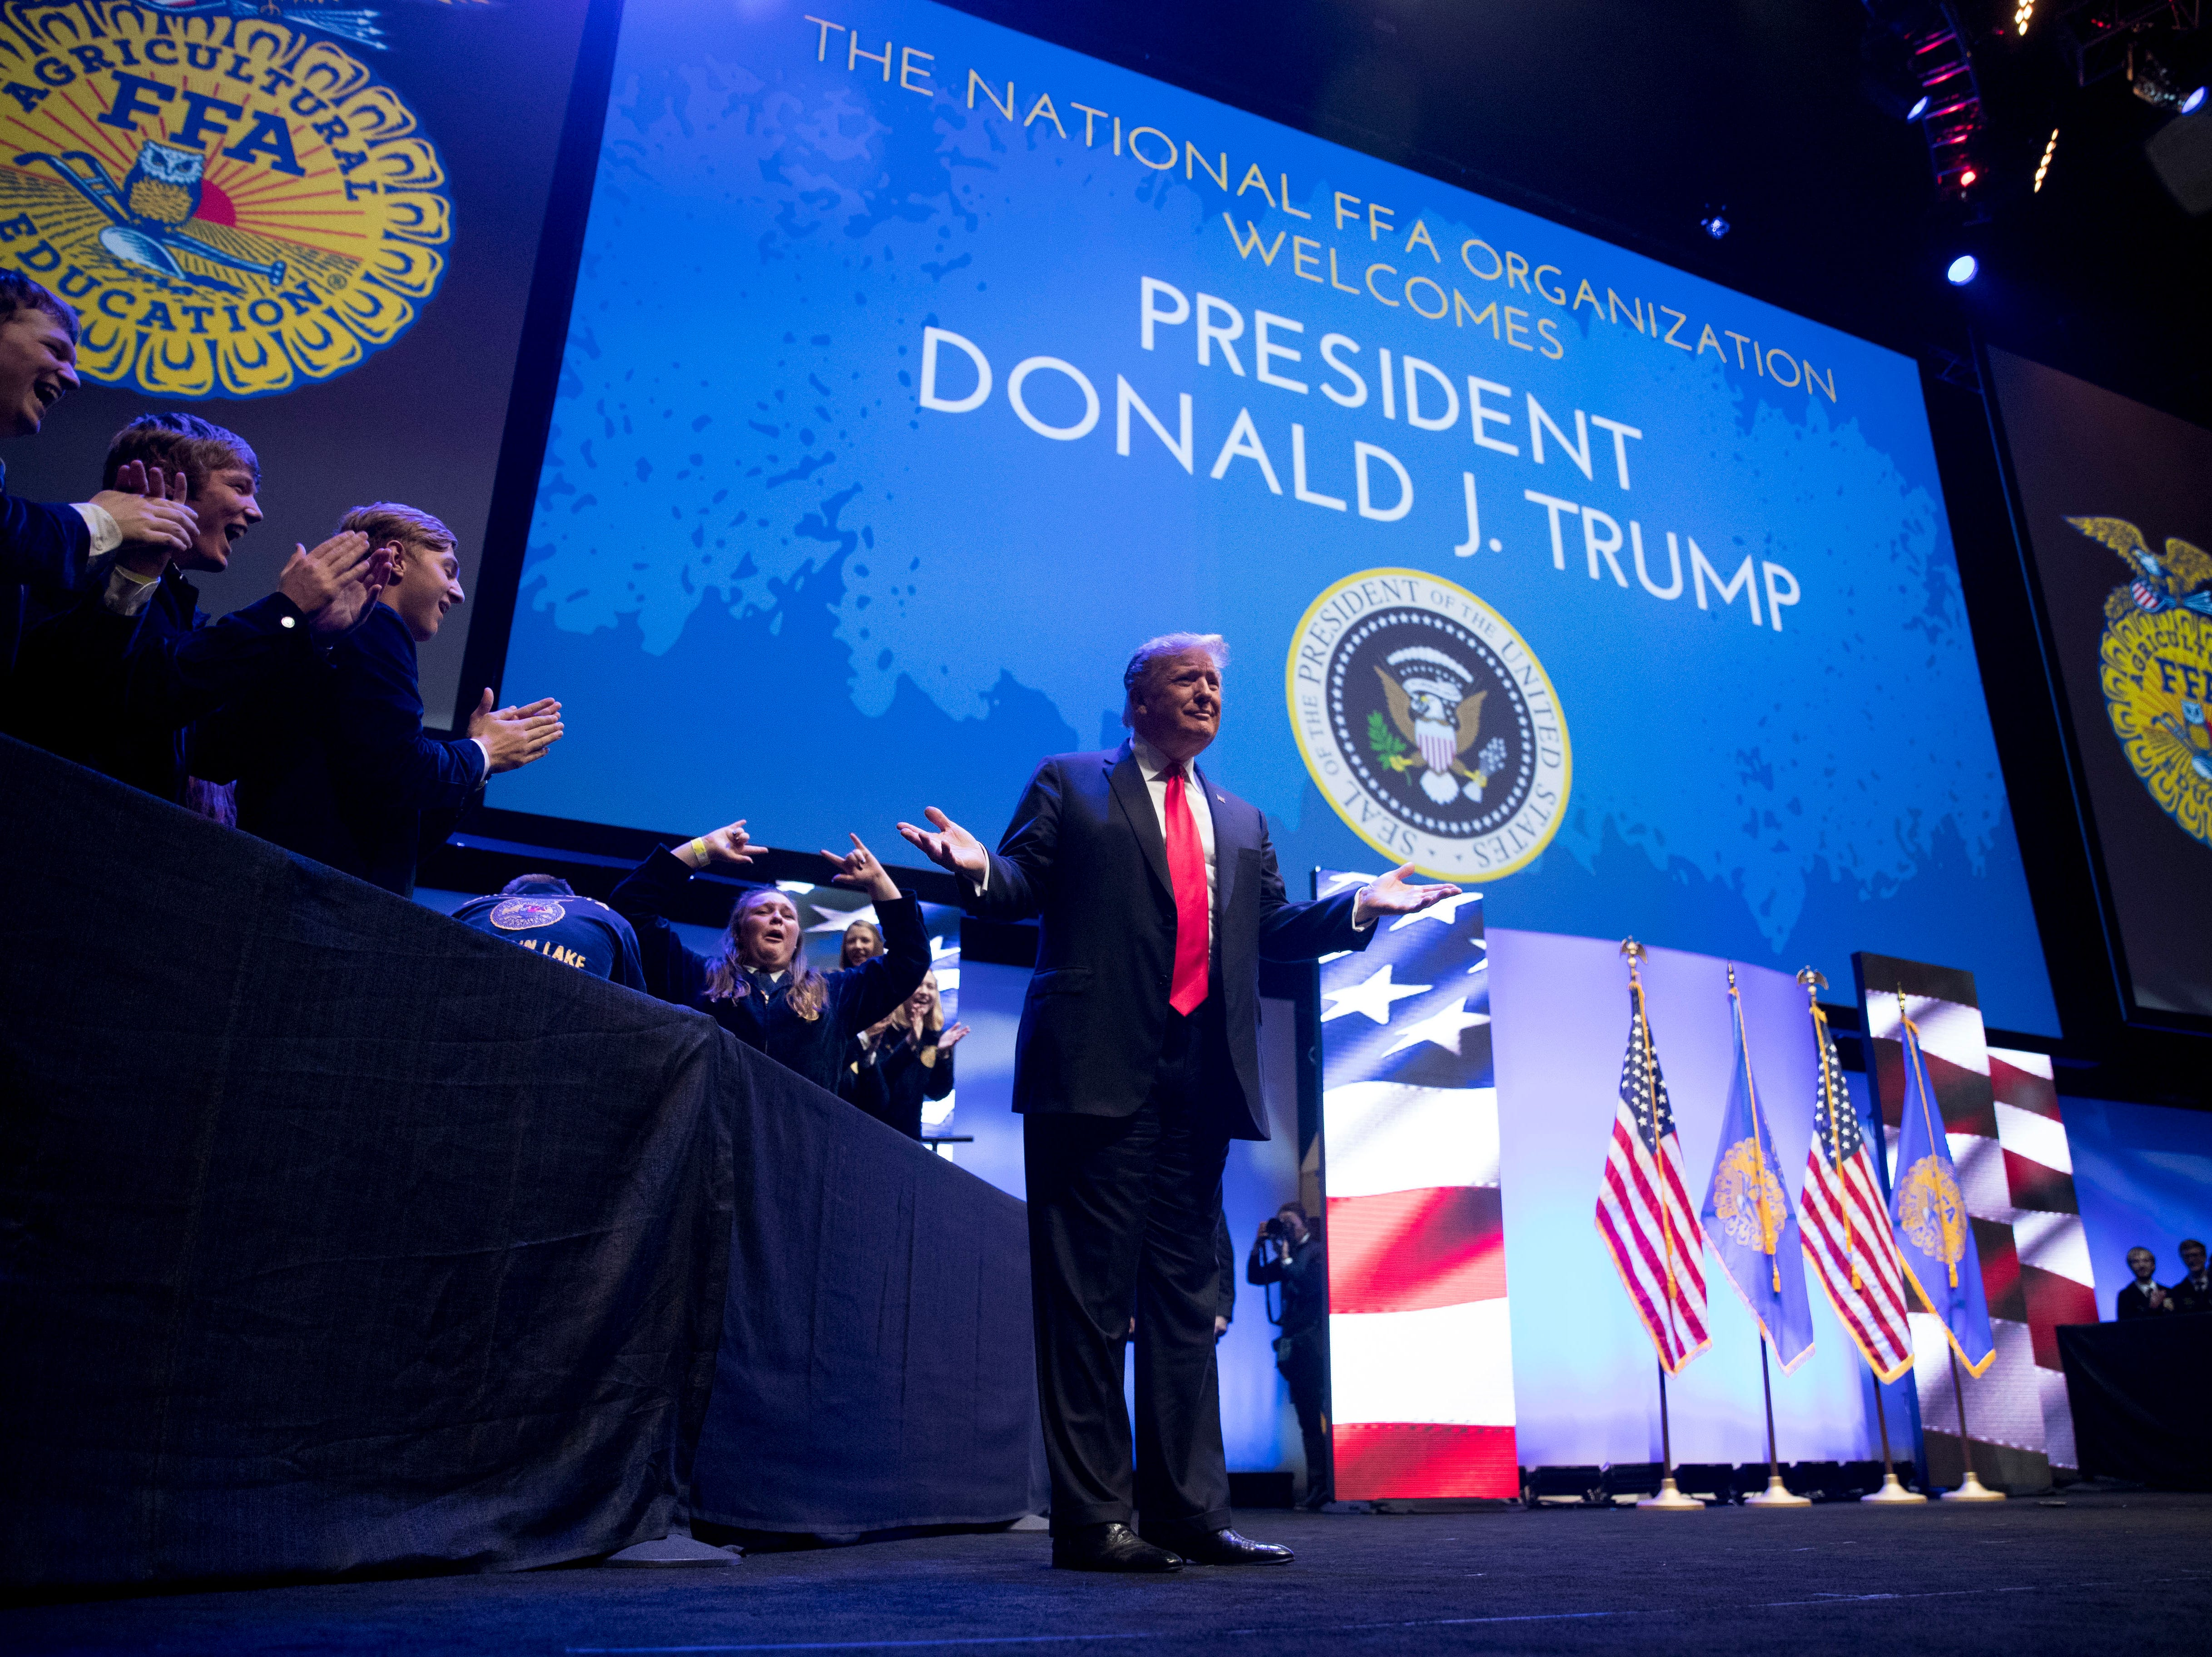 President Donald Trump arrives to speak at the 91st Annual Future Farmers of America Convention and Expo at Bankers Life Fieldhouse in Indianapolis, Saturday, Oct. 27, 2018.